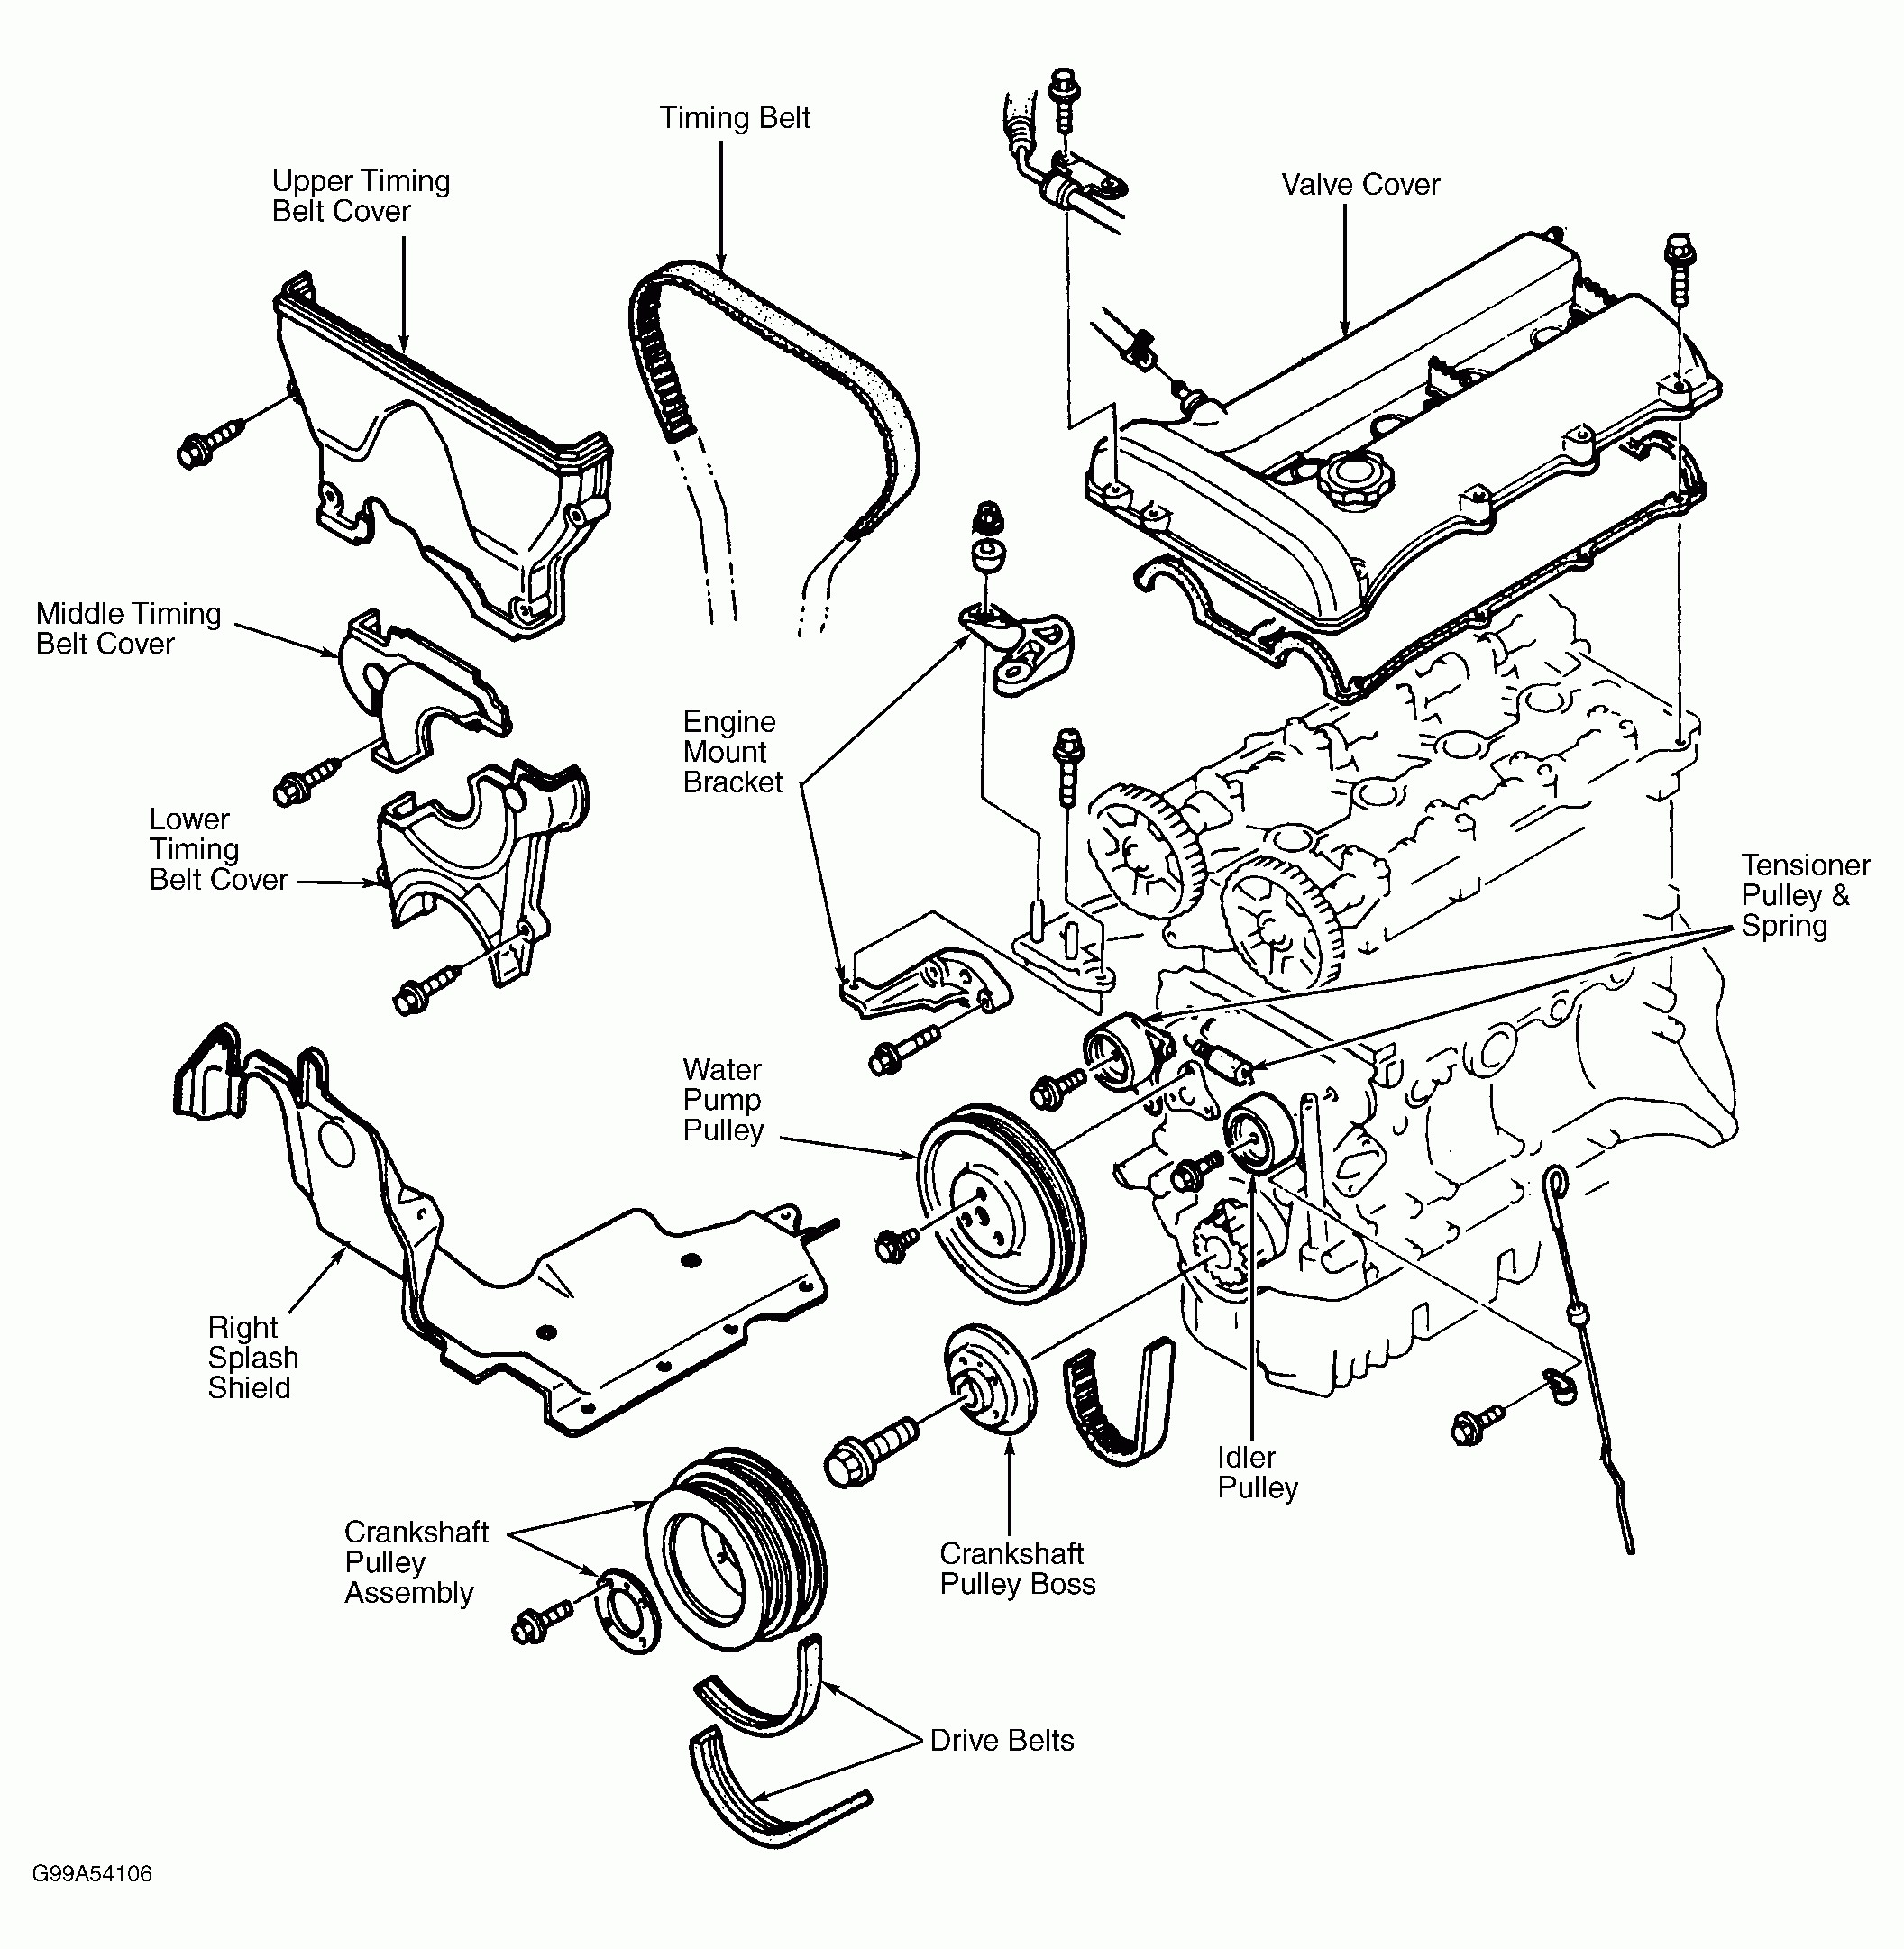 1999 mazda protege engine diagram wiring library Lincoln 2003 SL 88 mazda 323 wiring diagram opinions about wiring diagram u2022 1999 chevy monte carlo engine